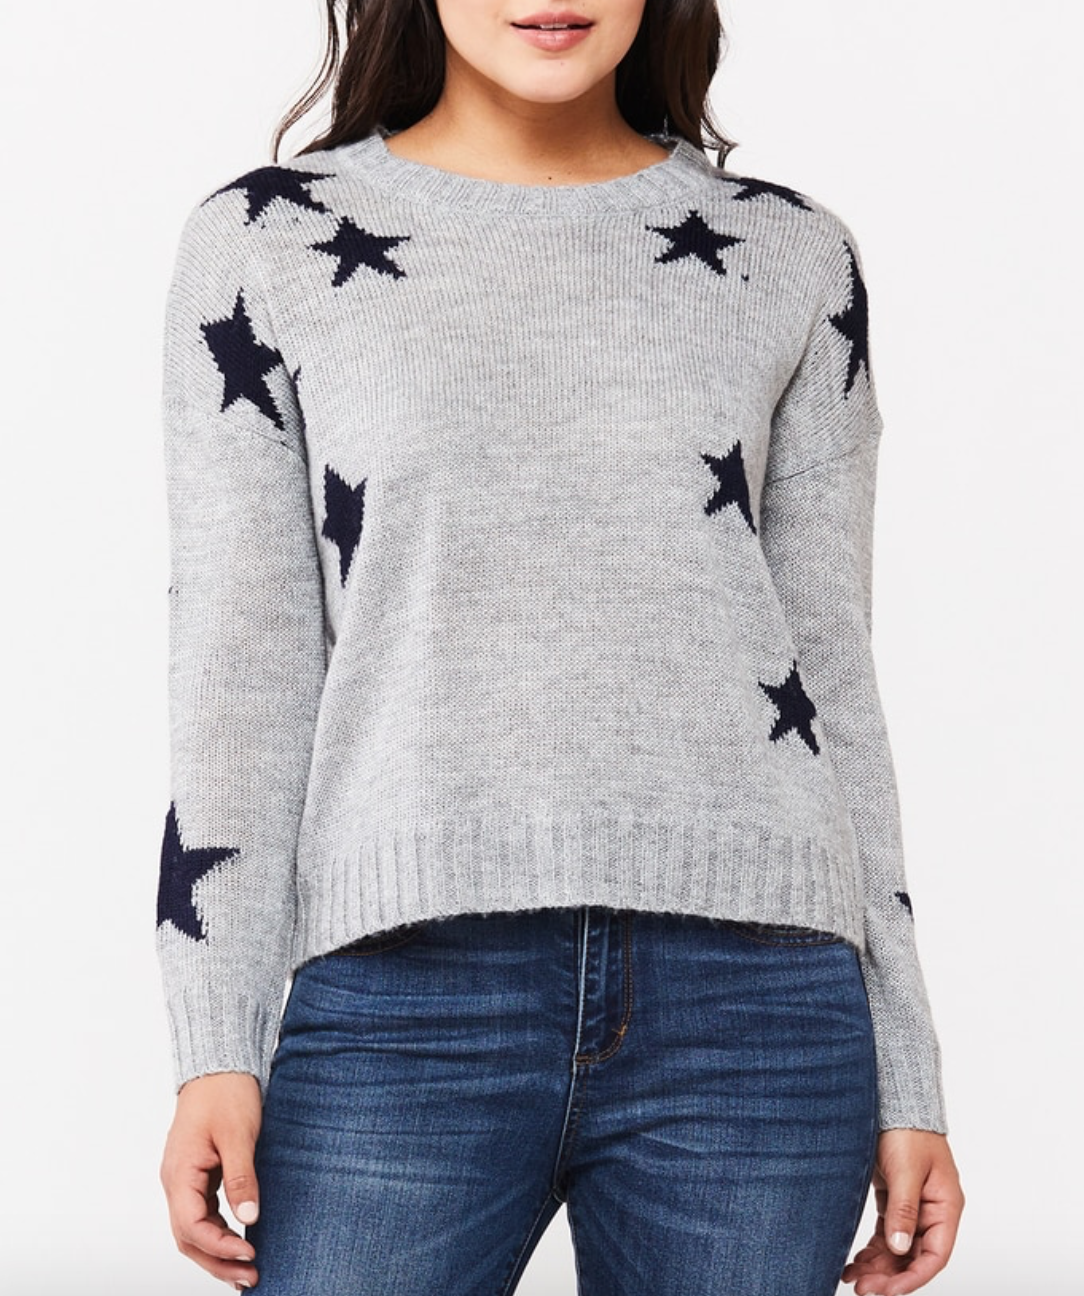 Gry/Navy Stars Pullover